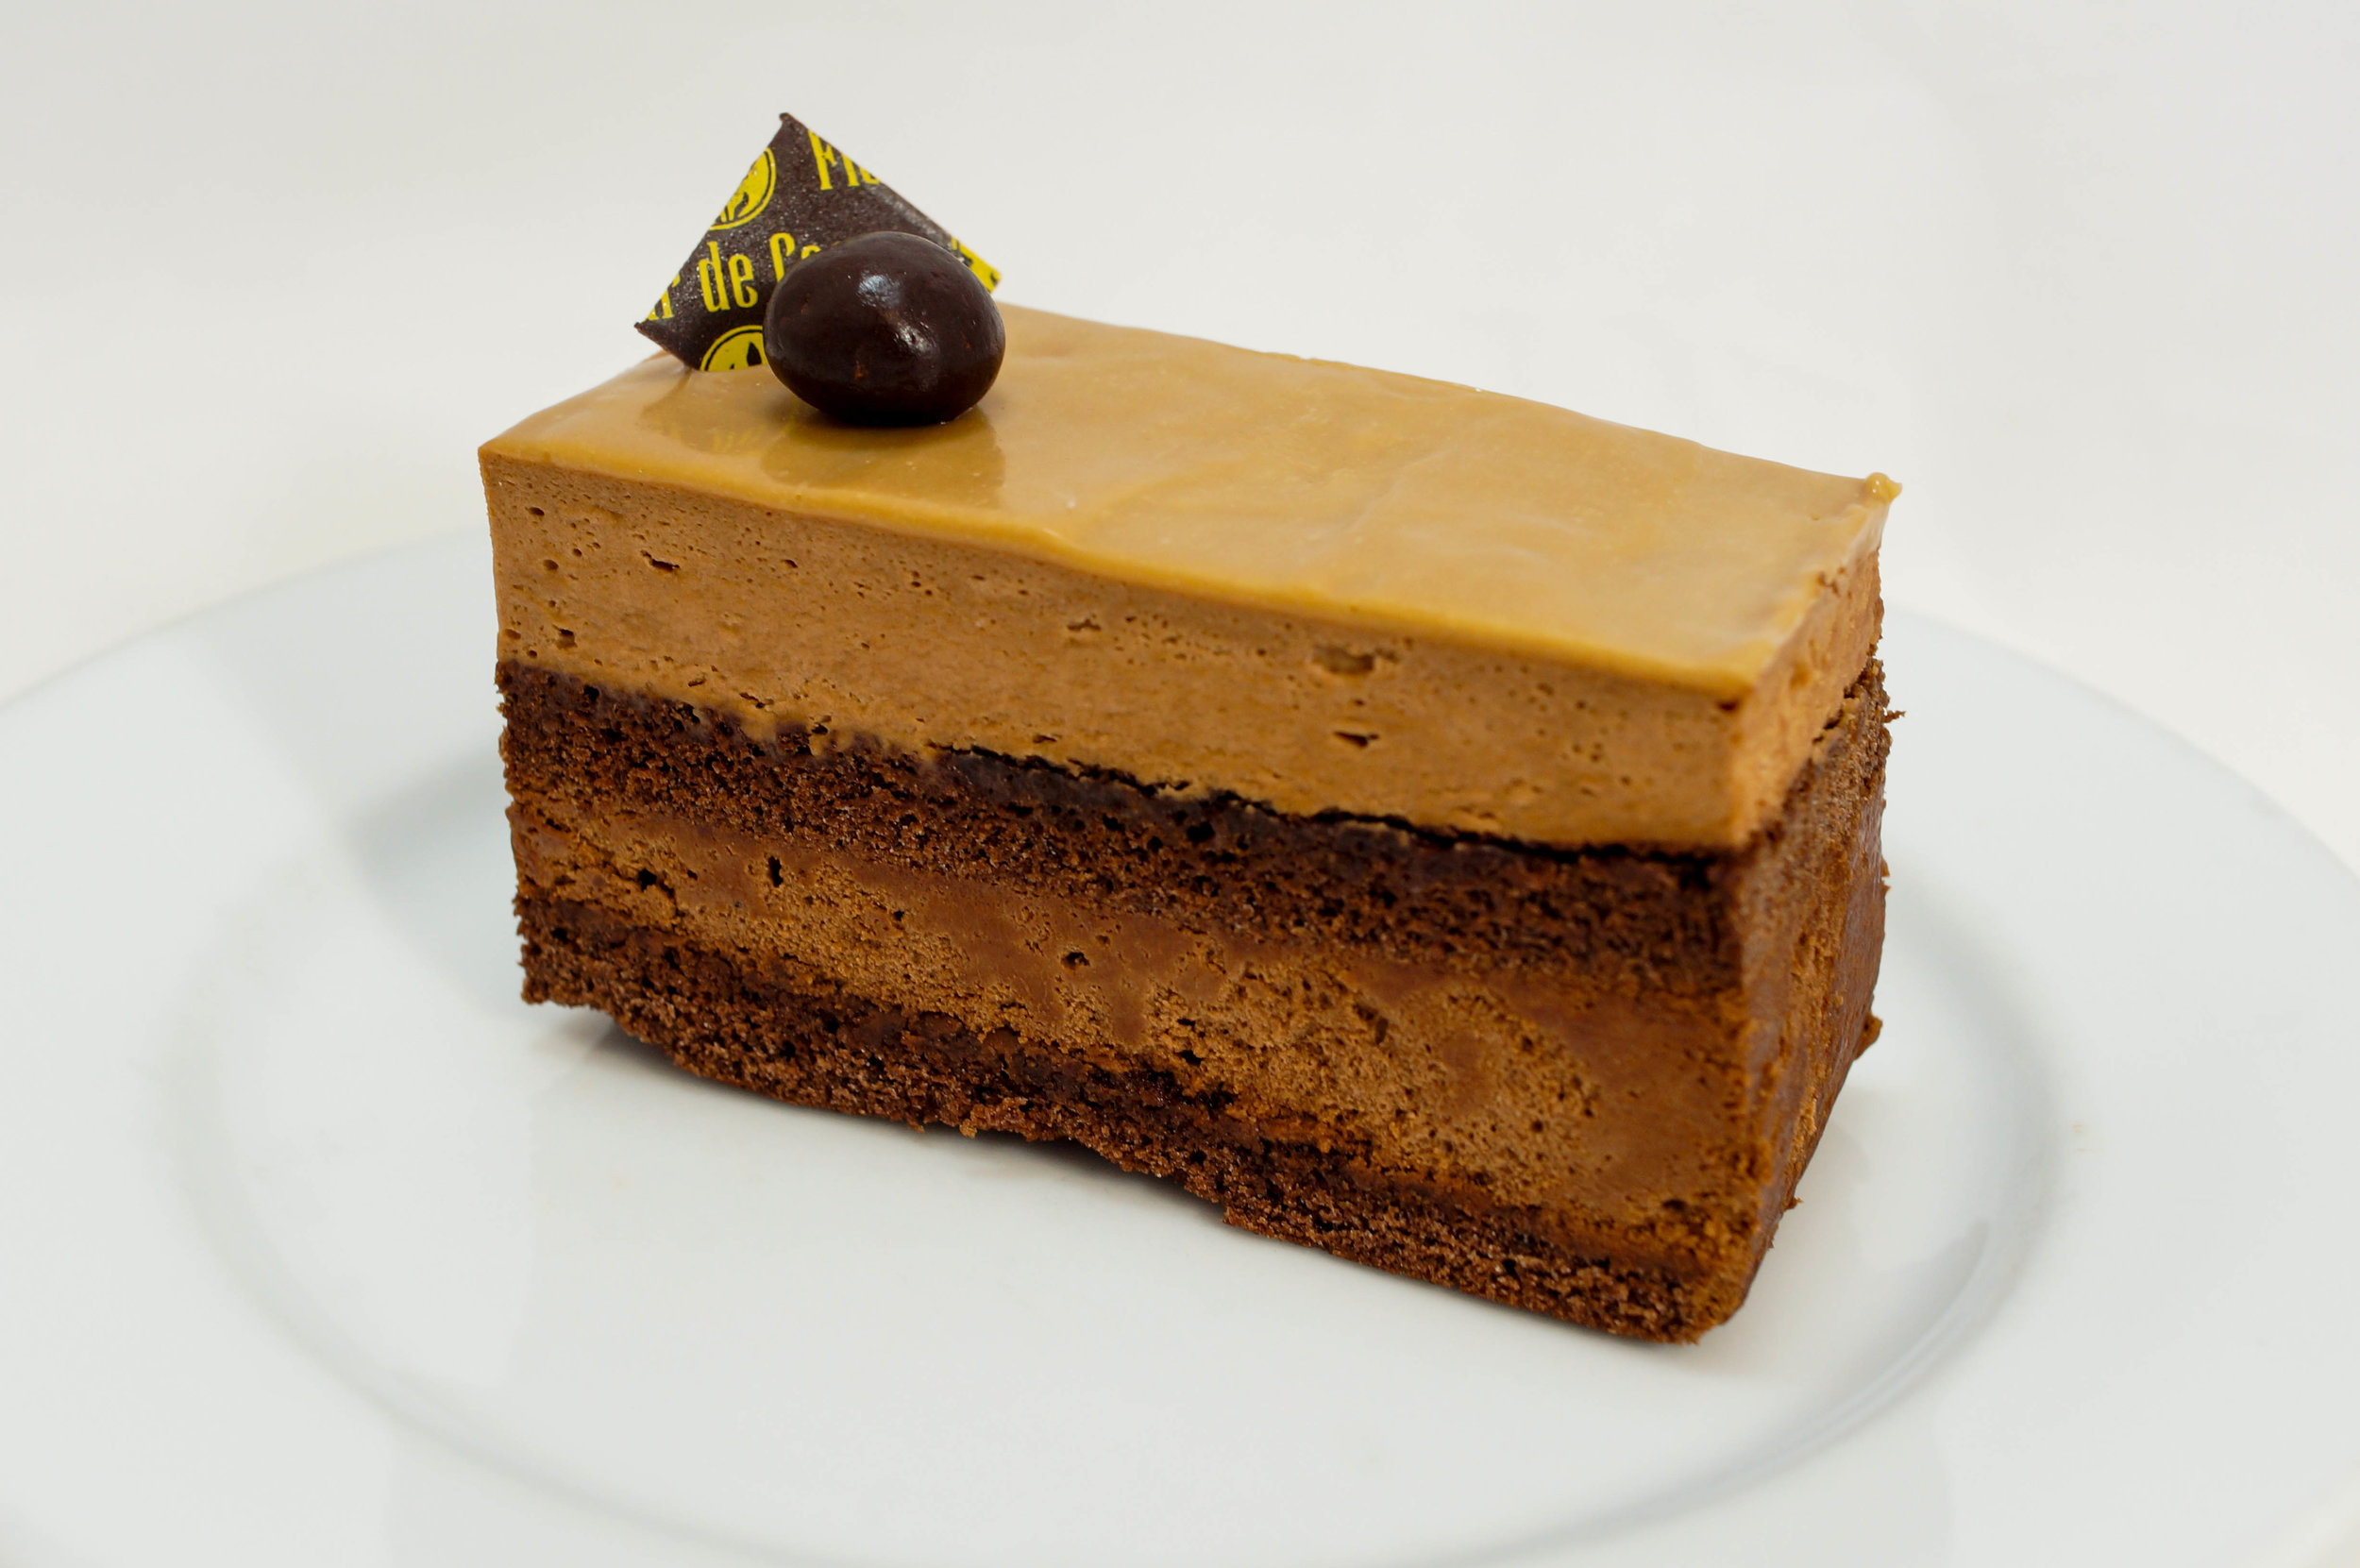 Opera   Coffee butter cream, chocolate ganache, and almond sponge cake (special order). Gluten-free.